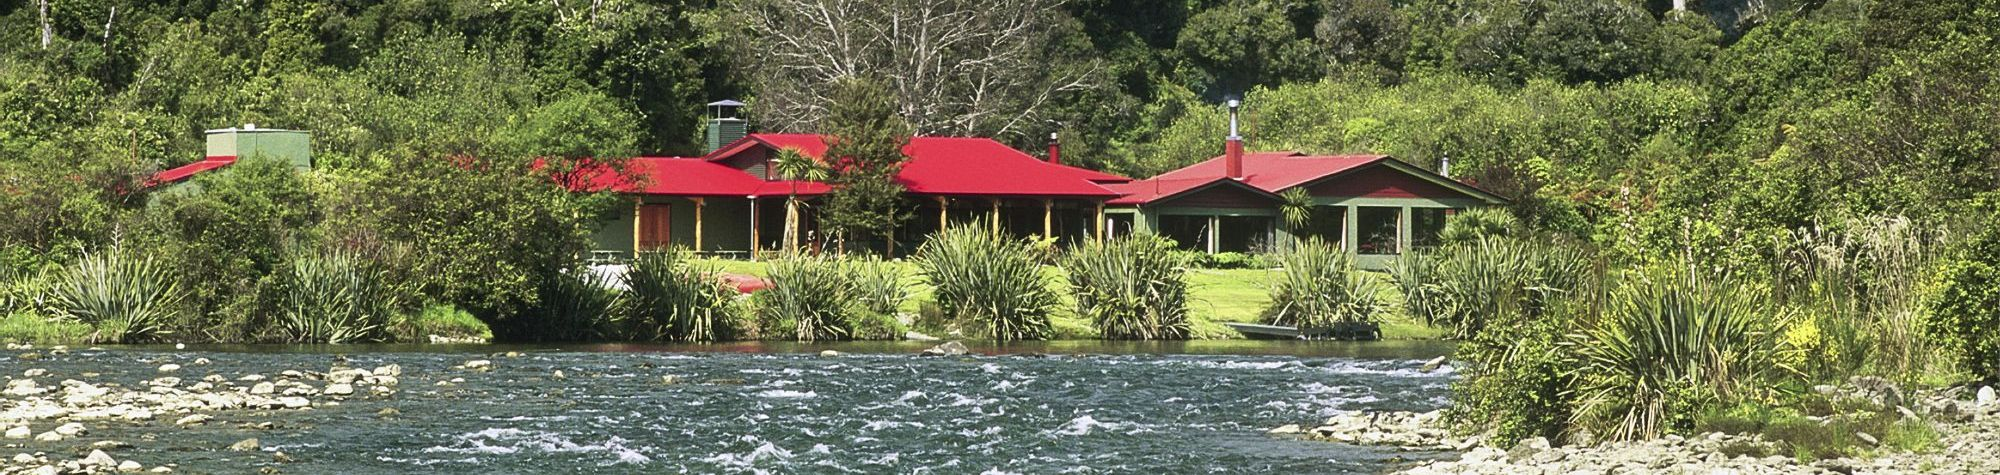 Wilderness Lodge Lake Moeraki